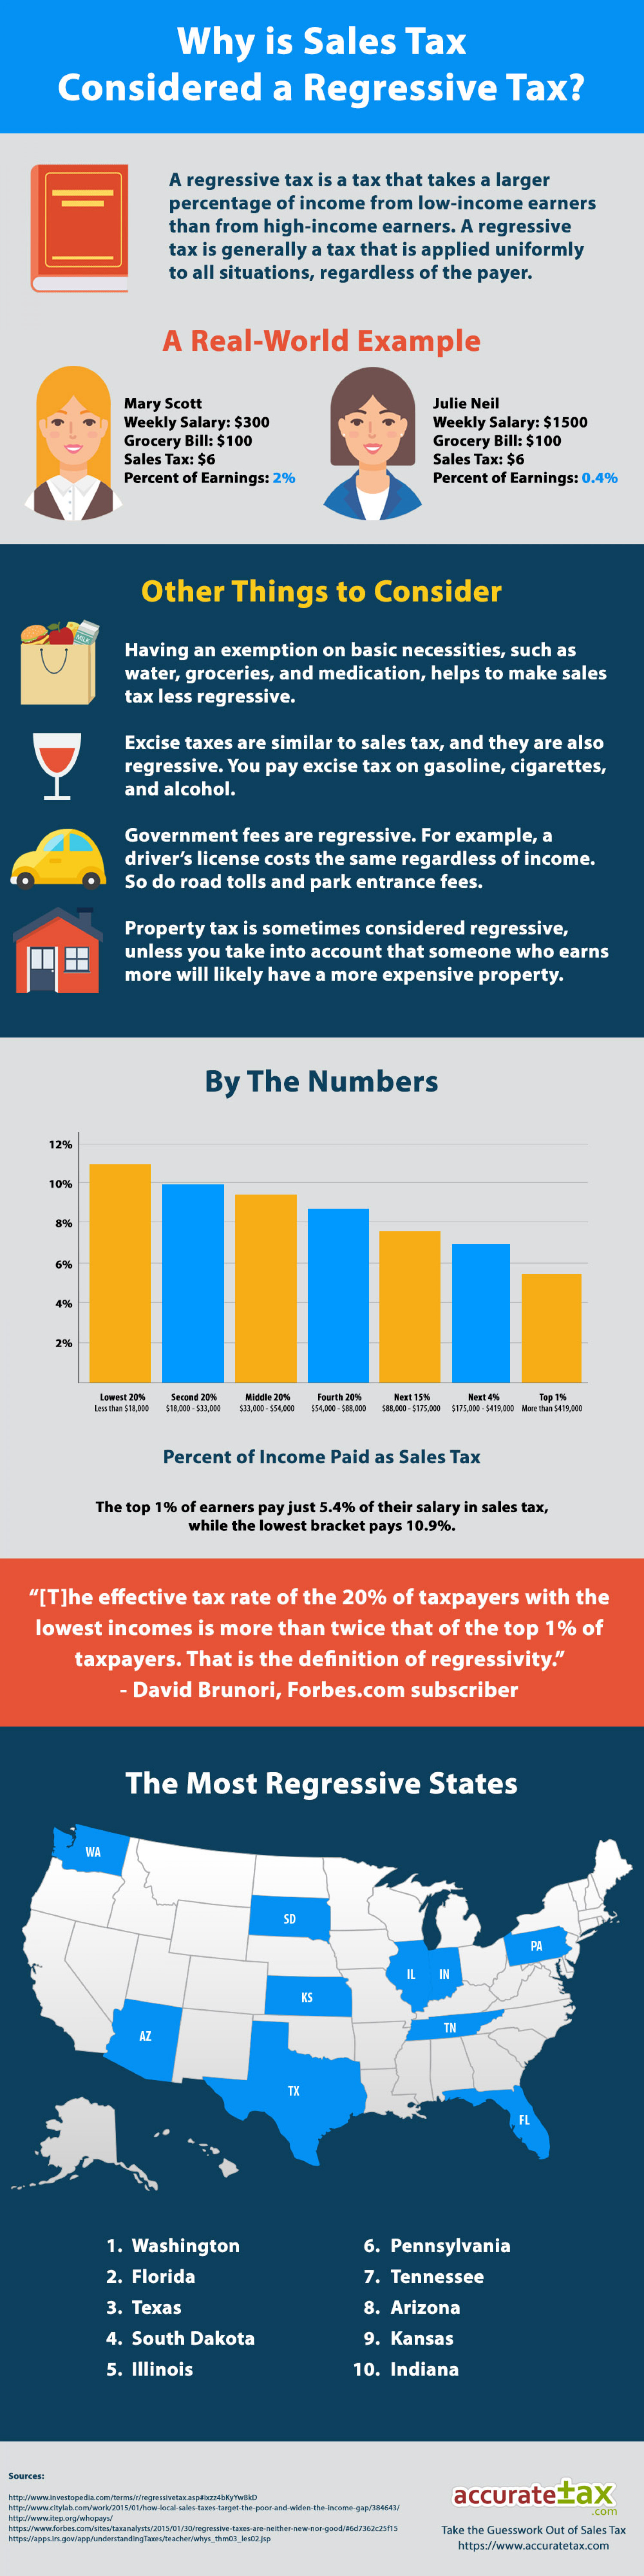 Why is Sales Tax Regressive? Infographic